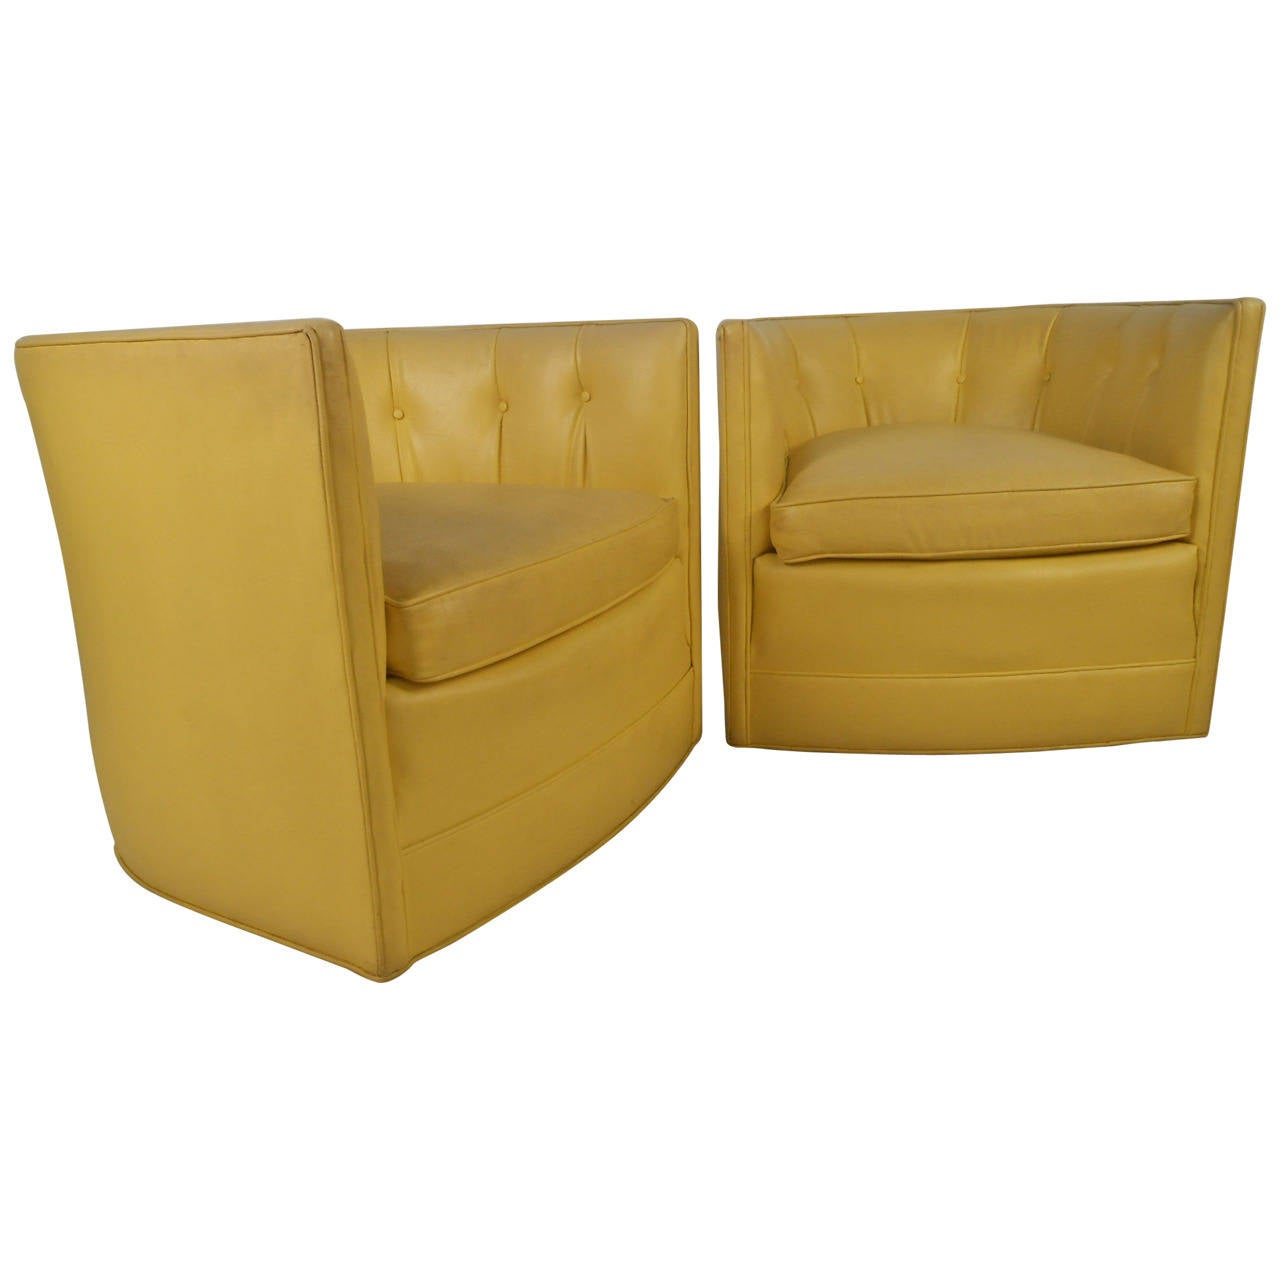 Pair of Yellow Tub Chairs by Henredon For Sale at 1stdibs